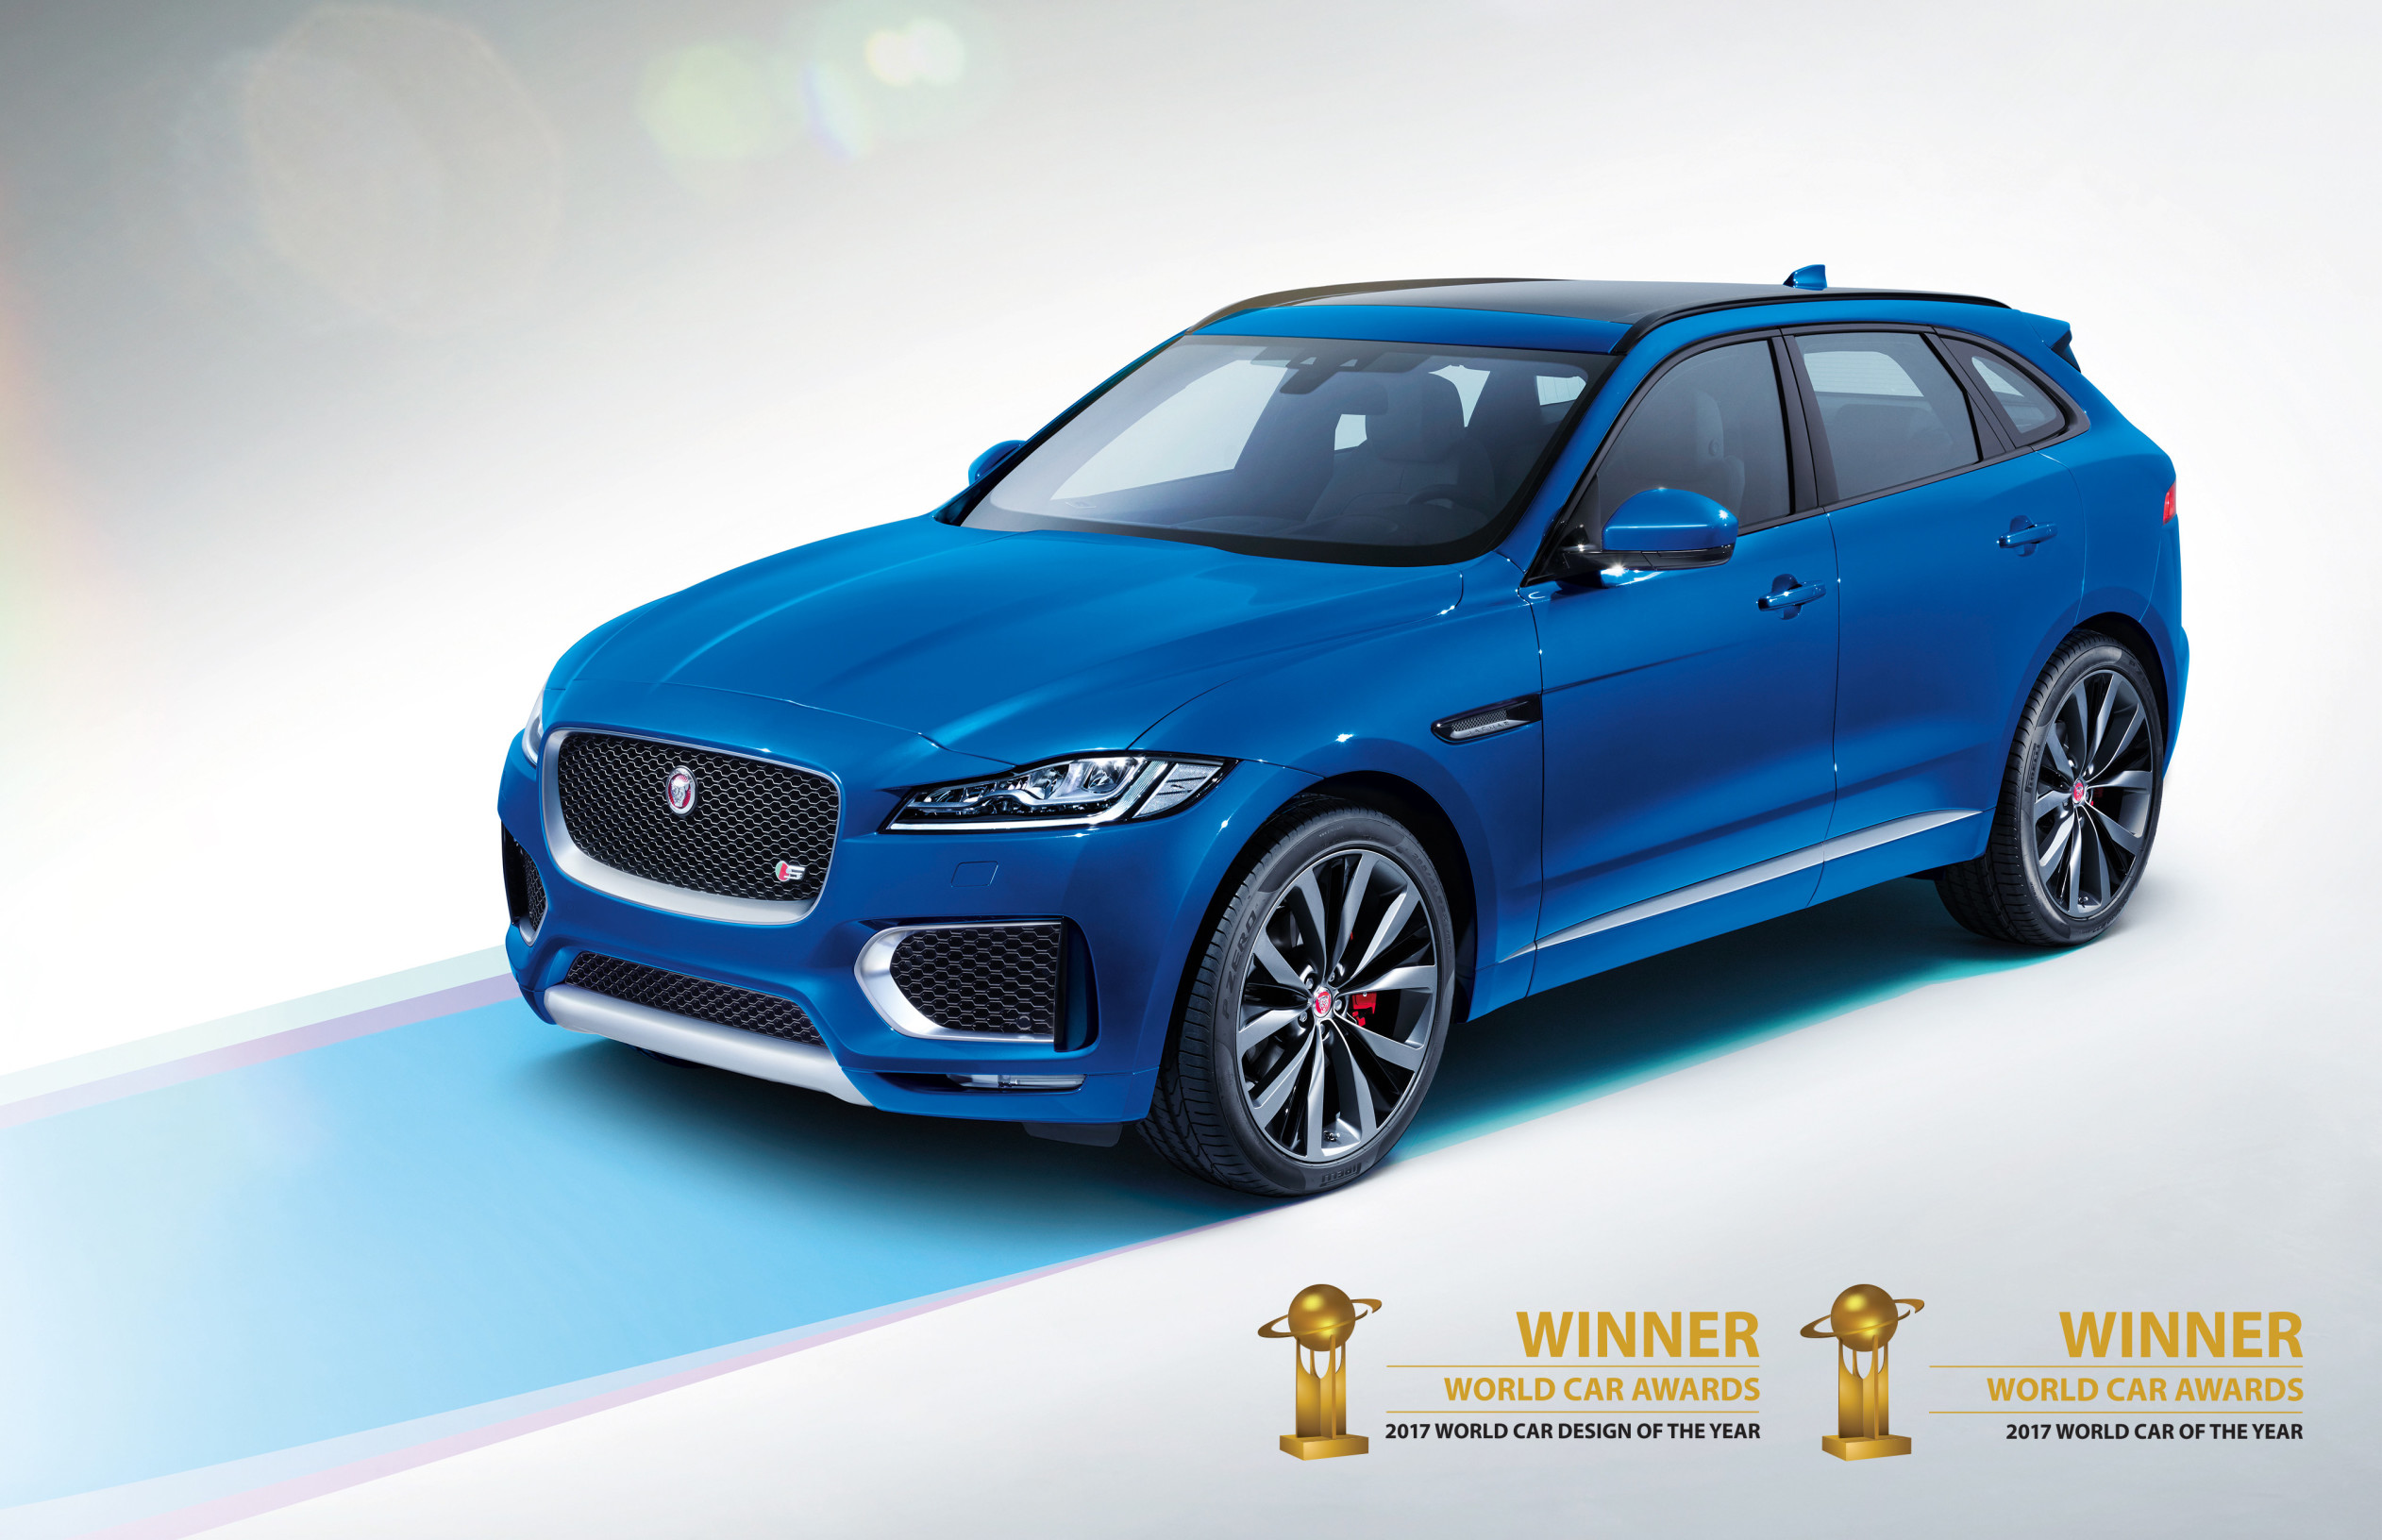 Jaguar F-PACE: Officially the best car in the world